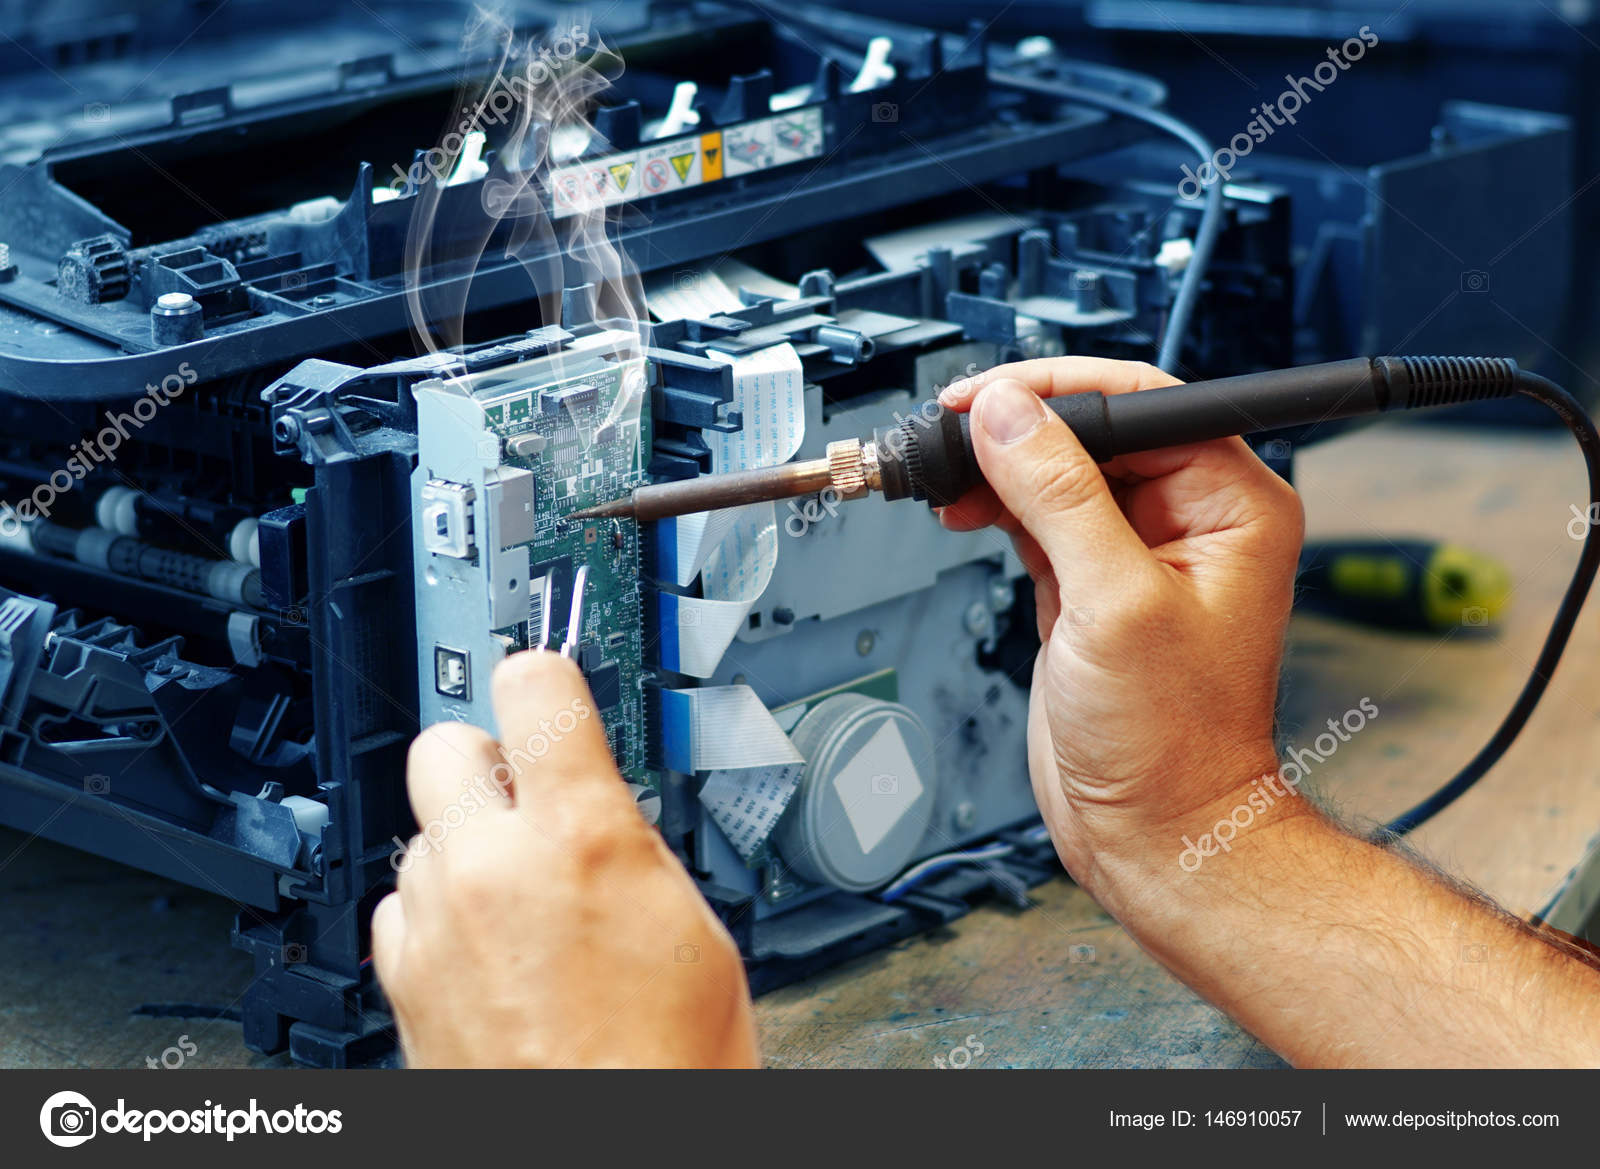 repair computer motherboard with soldering iron close up stock photo elit76 146910057. Black Bedroom Furniture Sets. Home Design Ideas